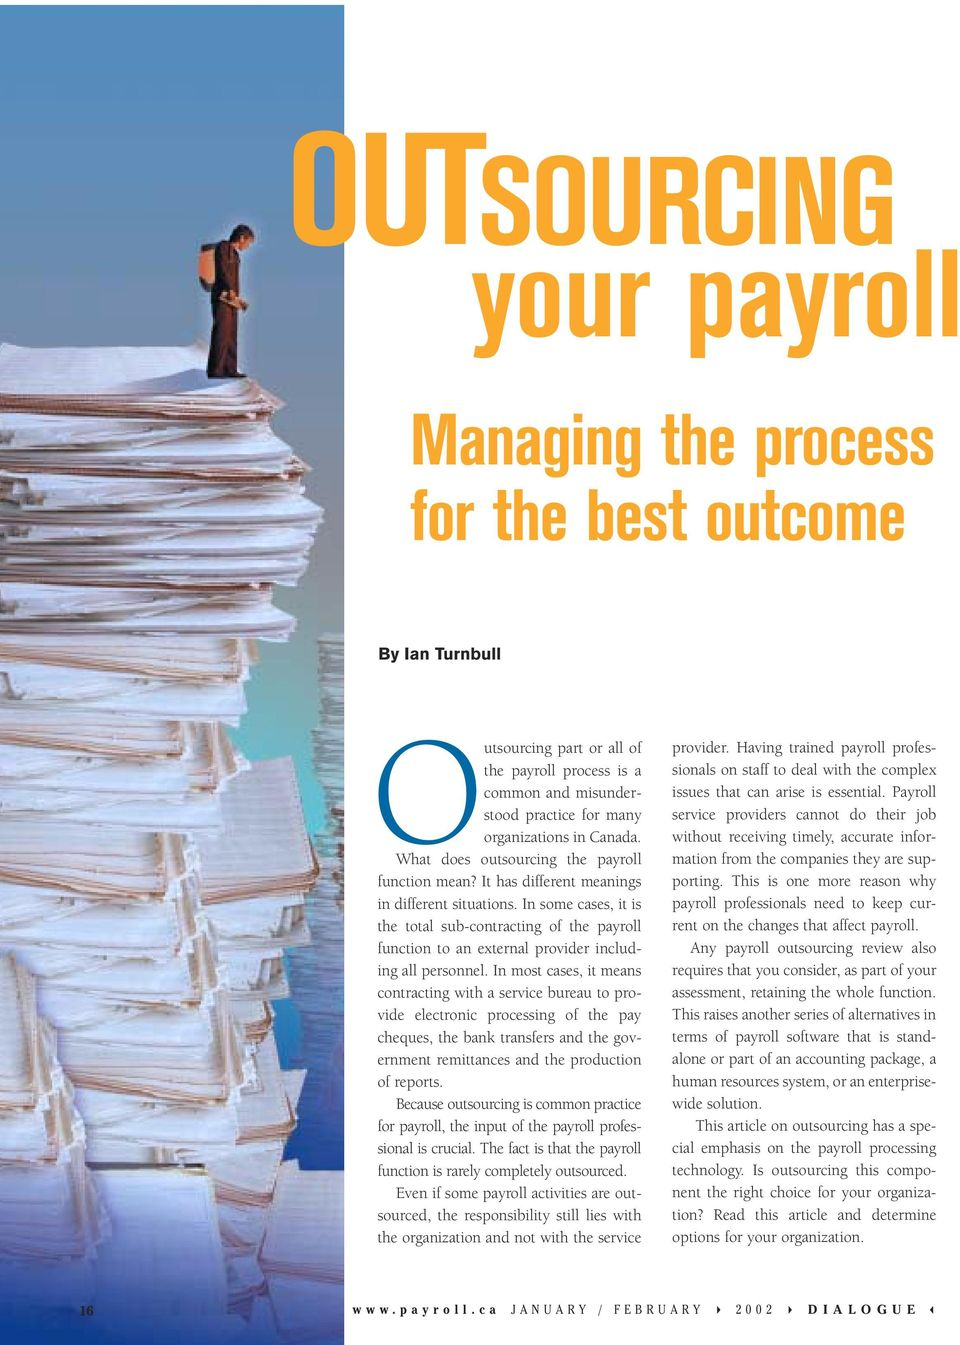 In some cases, it is the total sub-contracting of the payroll function to an external provider including all personnel.